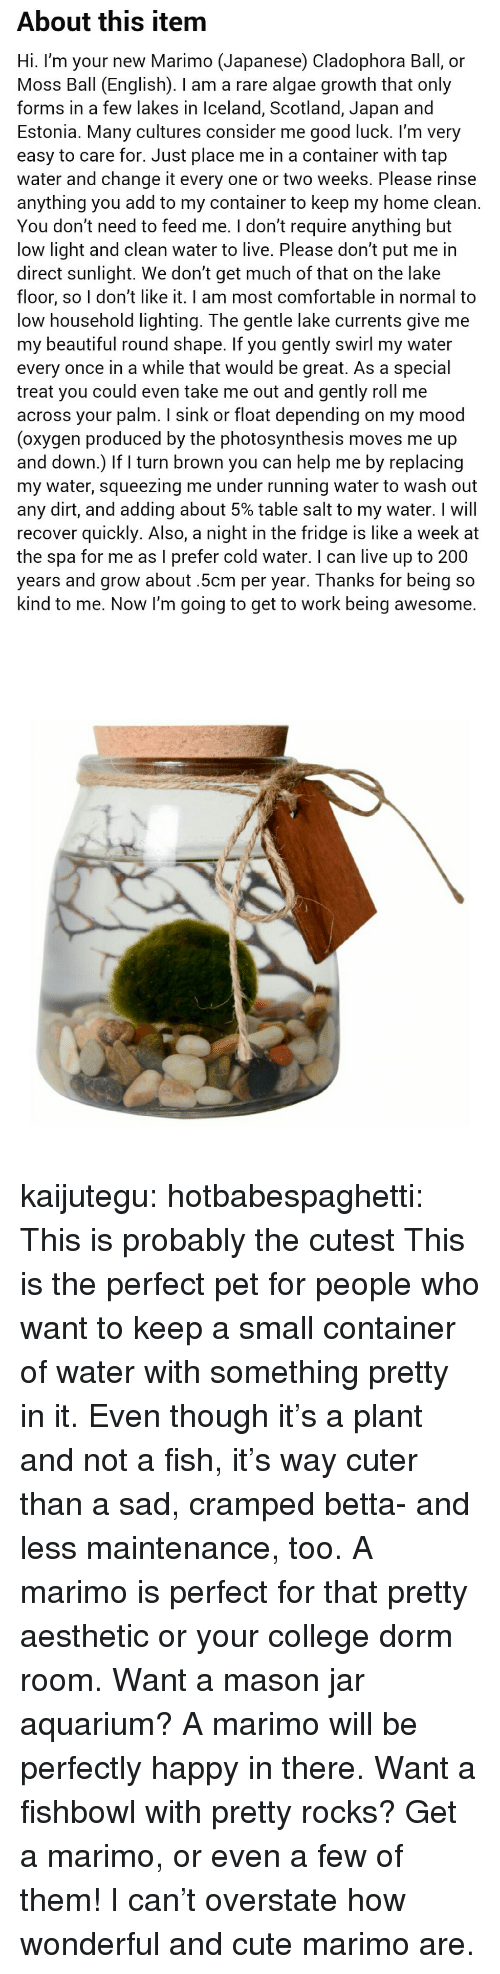 Bailey Jay, Beautiful, and College: About this item  Hi. I'm your new Marimo (Japanese) Cladophora Ball, or  Moss Ball (English). I am a rare algae growth that only  forms in a few lakes in Iceland, Scotland, Japan and  Estonia. Many cultures consider me good luck. l'm very  easy to care for. Just place me in a container with tap  water and change it every one or two weeks. Please rinse  anything you add to my container to keep my home clean.  You don't need to feed me. I don't require anything but  low light and clean water to live. Please don't put me in  direct sunlight. We don't get much of that on the lake  floor, so I don't like it. I am most comfortable in normal to  low household lighting. The gentle lake currents give me  my beautiful round shape. If you gently swirl my water  every once in a while that would be great. As a special  treat you could even take me out and gently roll me  across your palm. I sink or float depending on my mood  (oxygen produced by the photosynthesis moves me up  and down.) If turn brown you can help me by replacing  my water, squeezing me under running water to wash out  any dirt, and adding about 5% table salt to my water. I will  recover quickly. Also, a night in the fridge is like a week at  the spa for me as I prefer cold water. I can live up to 200  years and grow about.5cm per year. Thanks for being so  kind to me. Now I'm going to get to work being awesome. kaijutegu: hotbabespaghetti: This is probably the cutest  This is the perfect pet for people who want to keep a small container of water with something pretty in it. Even though it's a plant and not a fish, it's way cuter than a sad, cramped betta- and less maintenance, too. A marimo is perfect for that pretty aesthetic or your college dorm room. Want a mason jar aquarium? A marimo will be perfectly happy in there. Want a fishbowl with pretty rocks? Get a marimo, or even a few of them! I can't overstate how wonderful and cute marimo are.